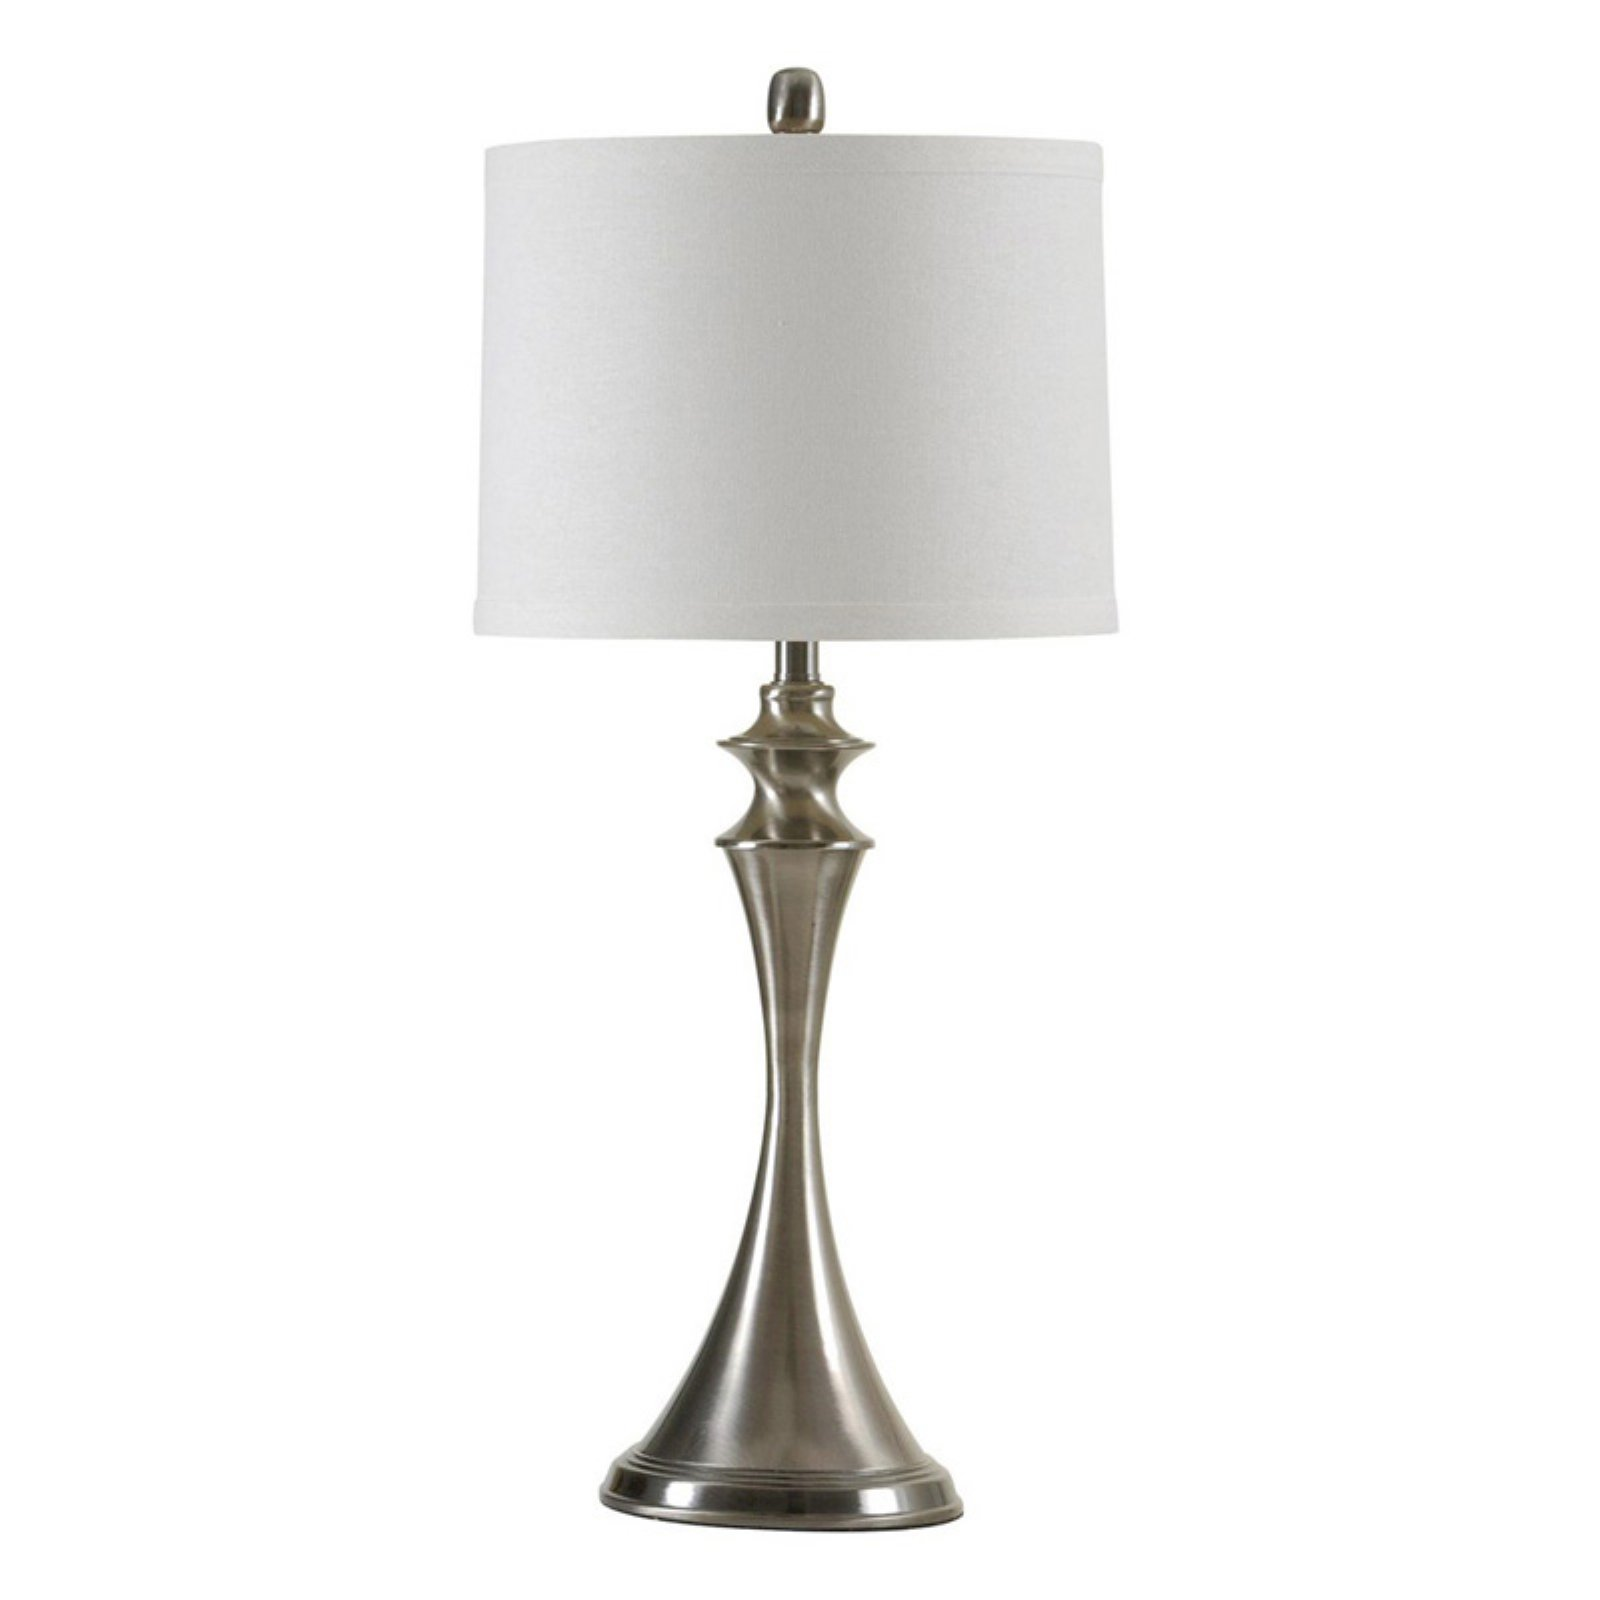 StyleCraft Hour Glass Black Brushed Steel Table Lamp   Walmart.com